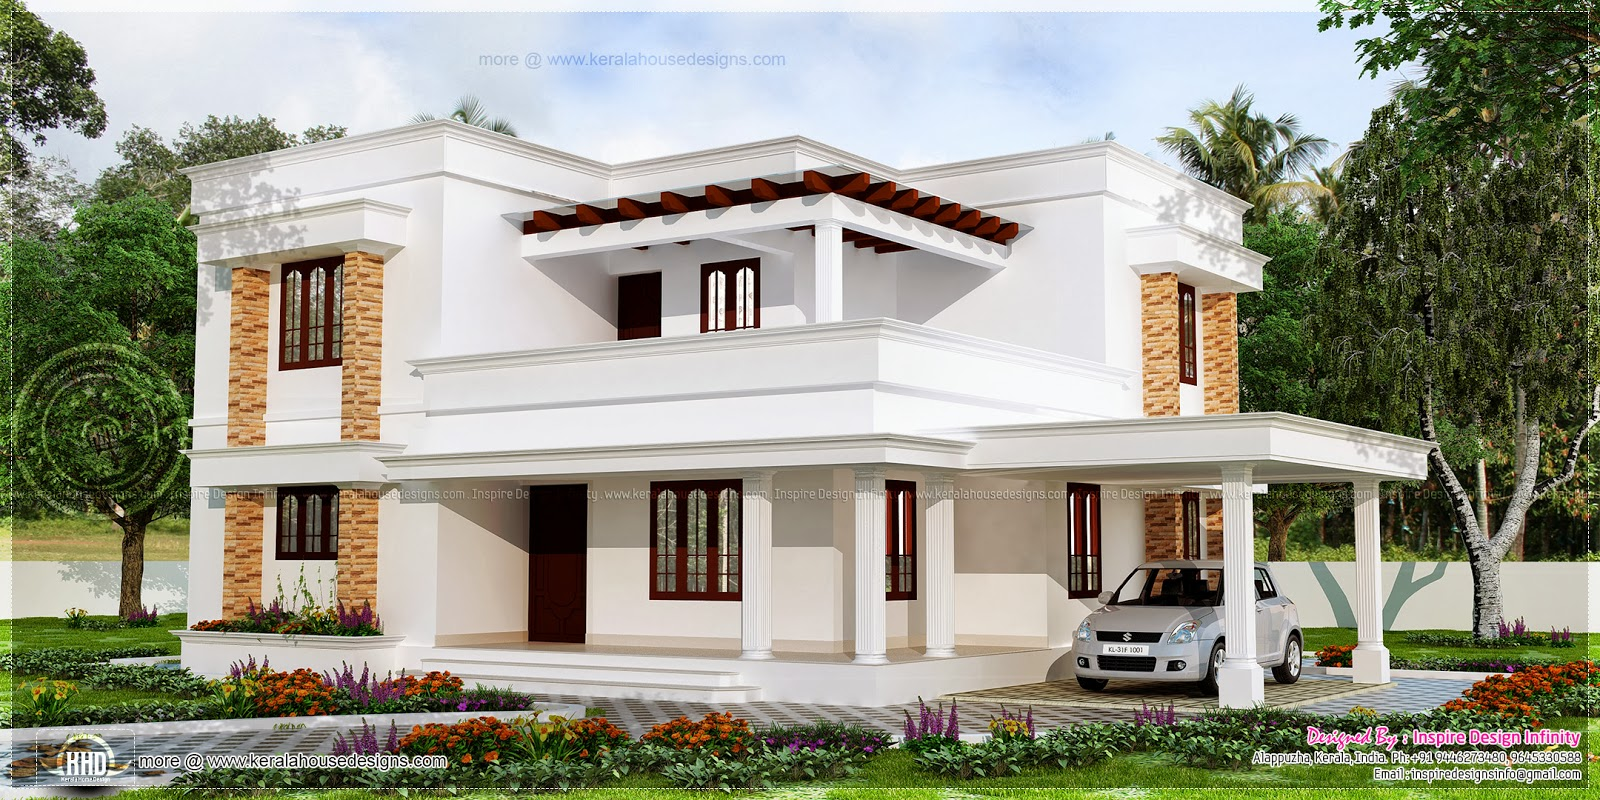 167 Square Meter Flat Roof White Color House